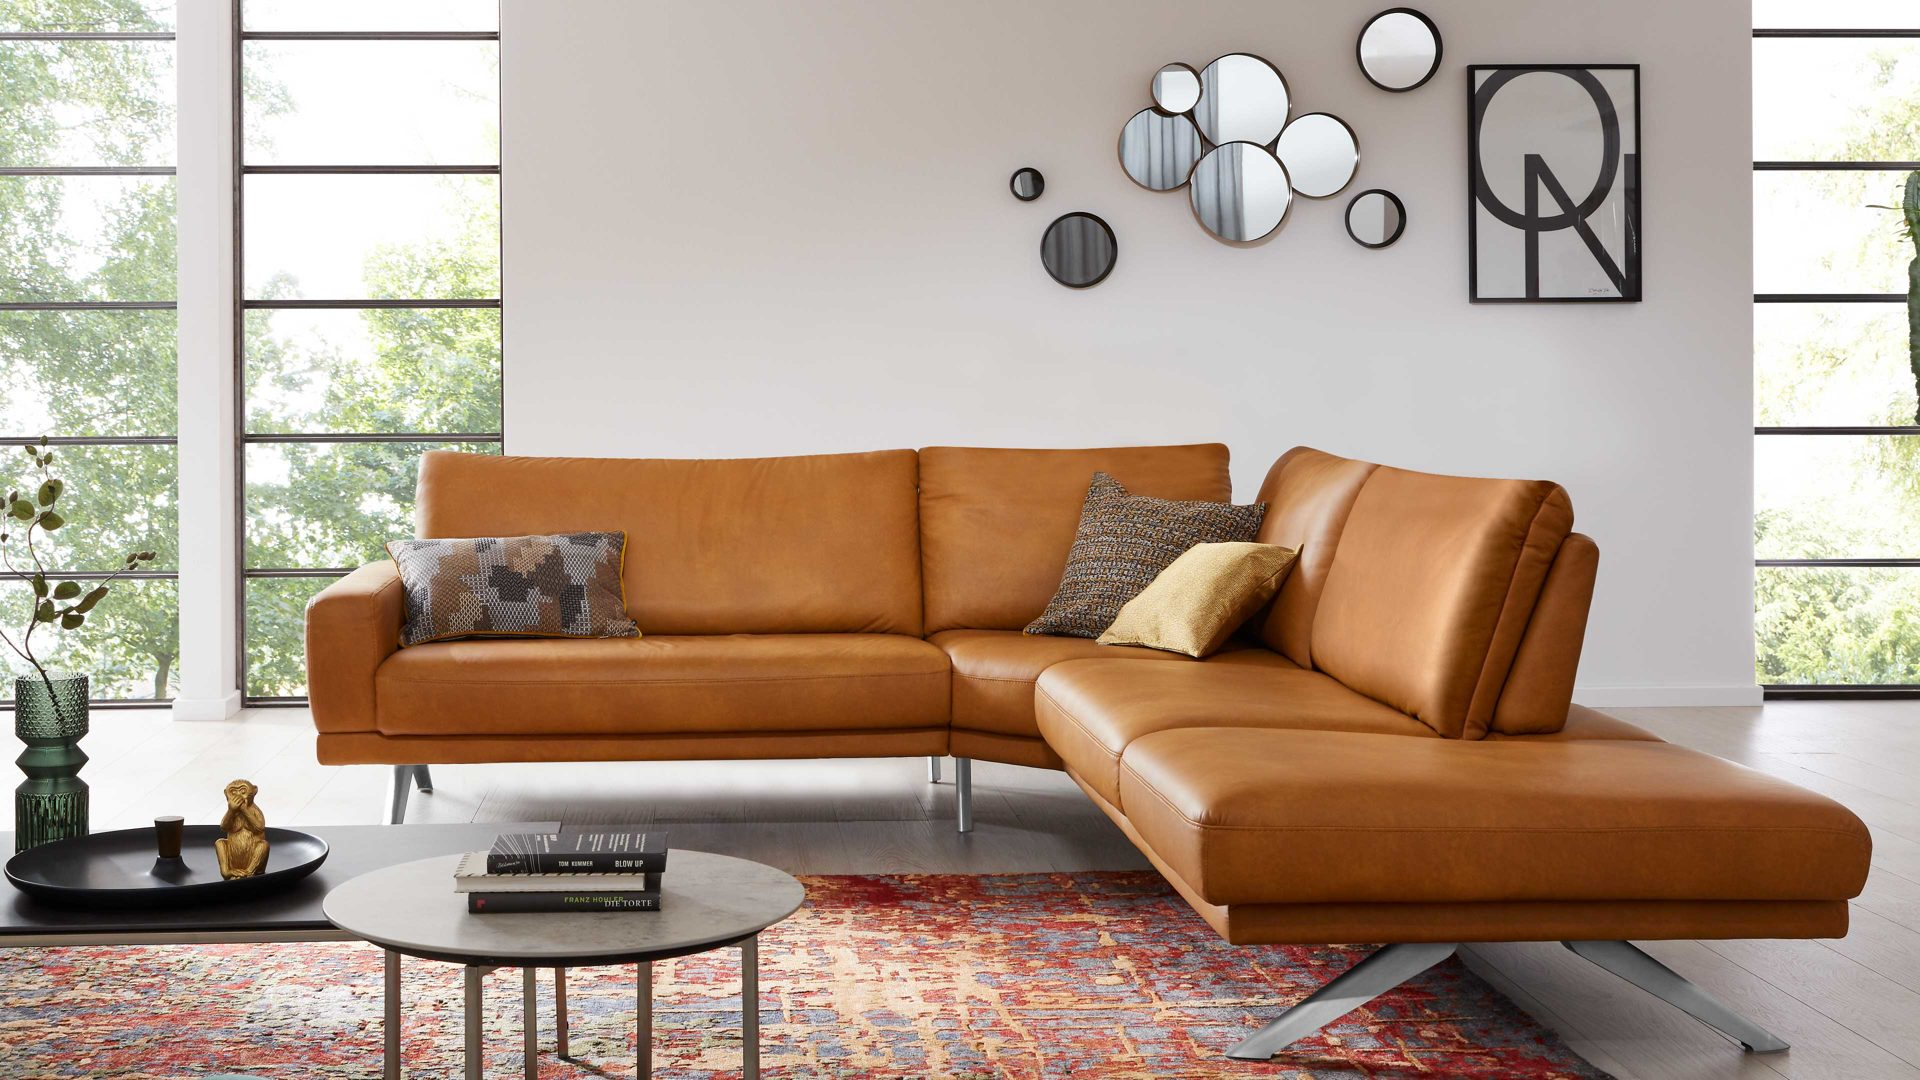 Ecksofa Interliving aus Leder in Orange Interliving Sofa Serie 4220 – Eckkombination kurkumafarbenes LongLife-Leder – Stellfläche ca. 260 x 276 cm